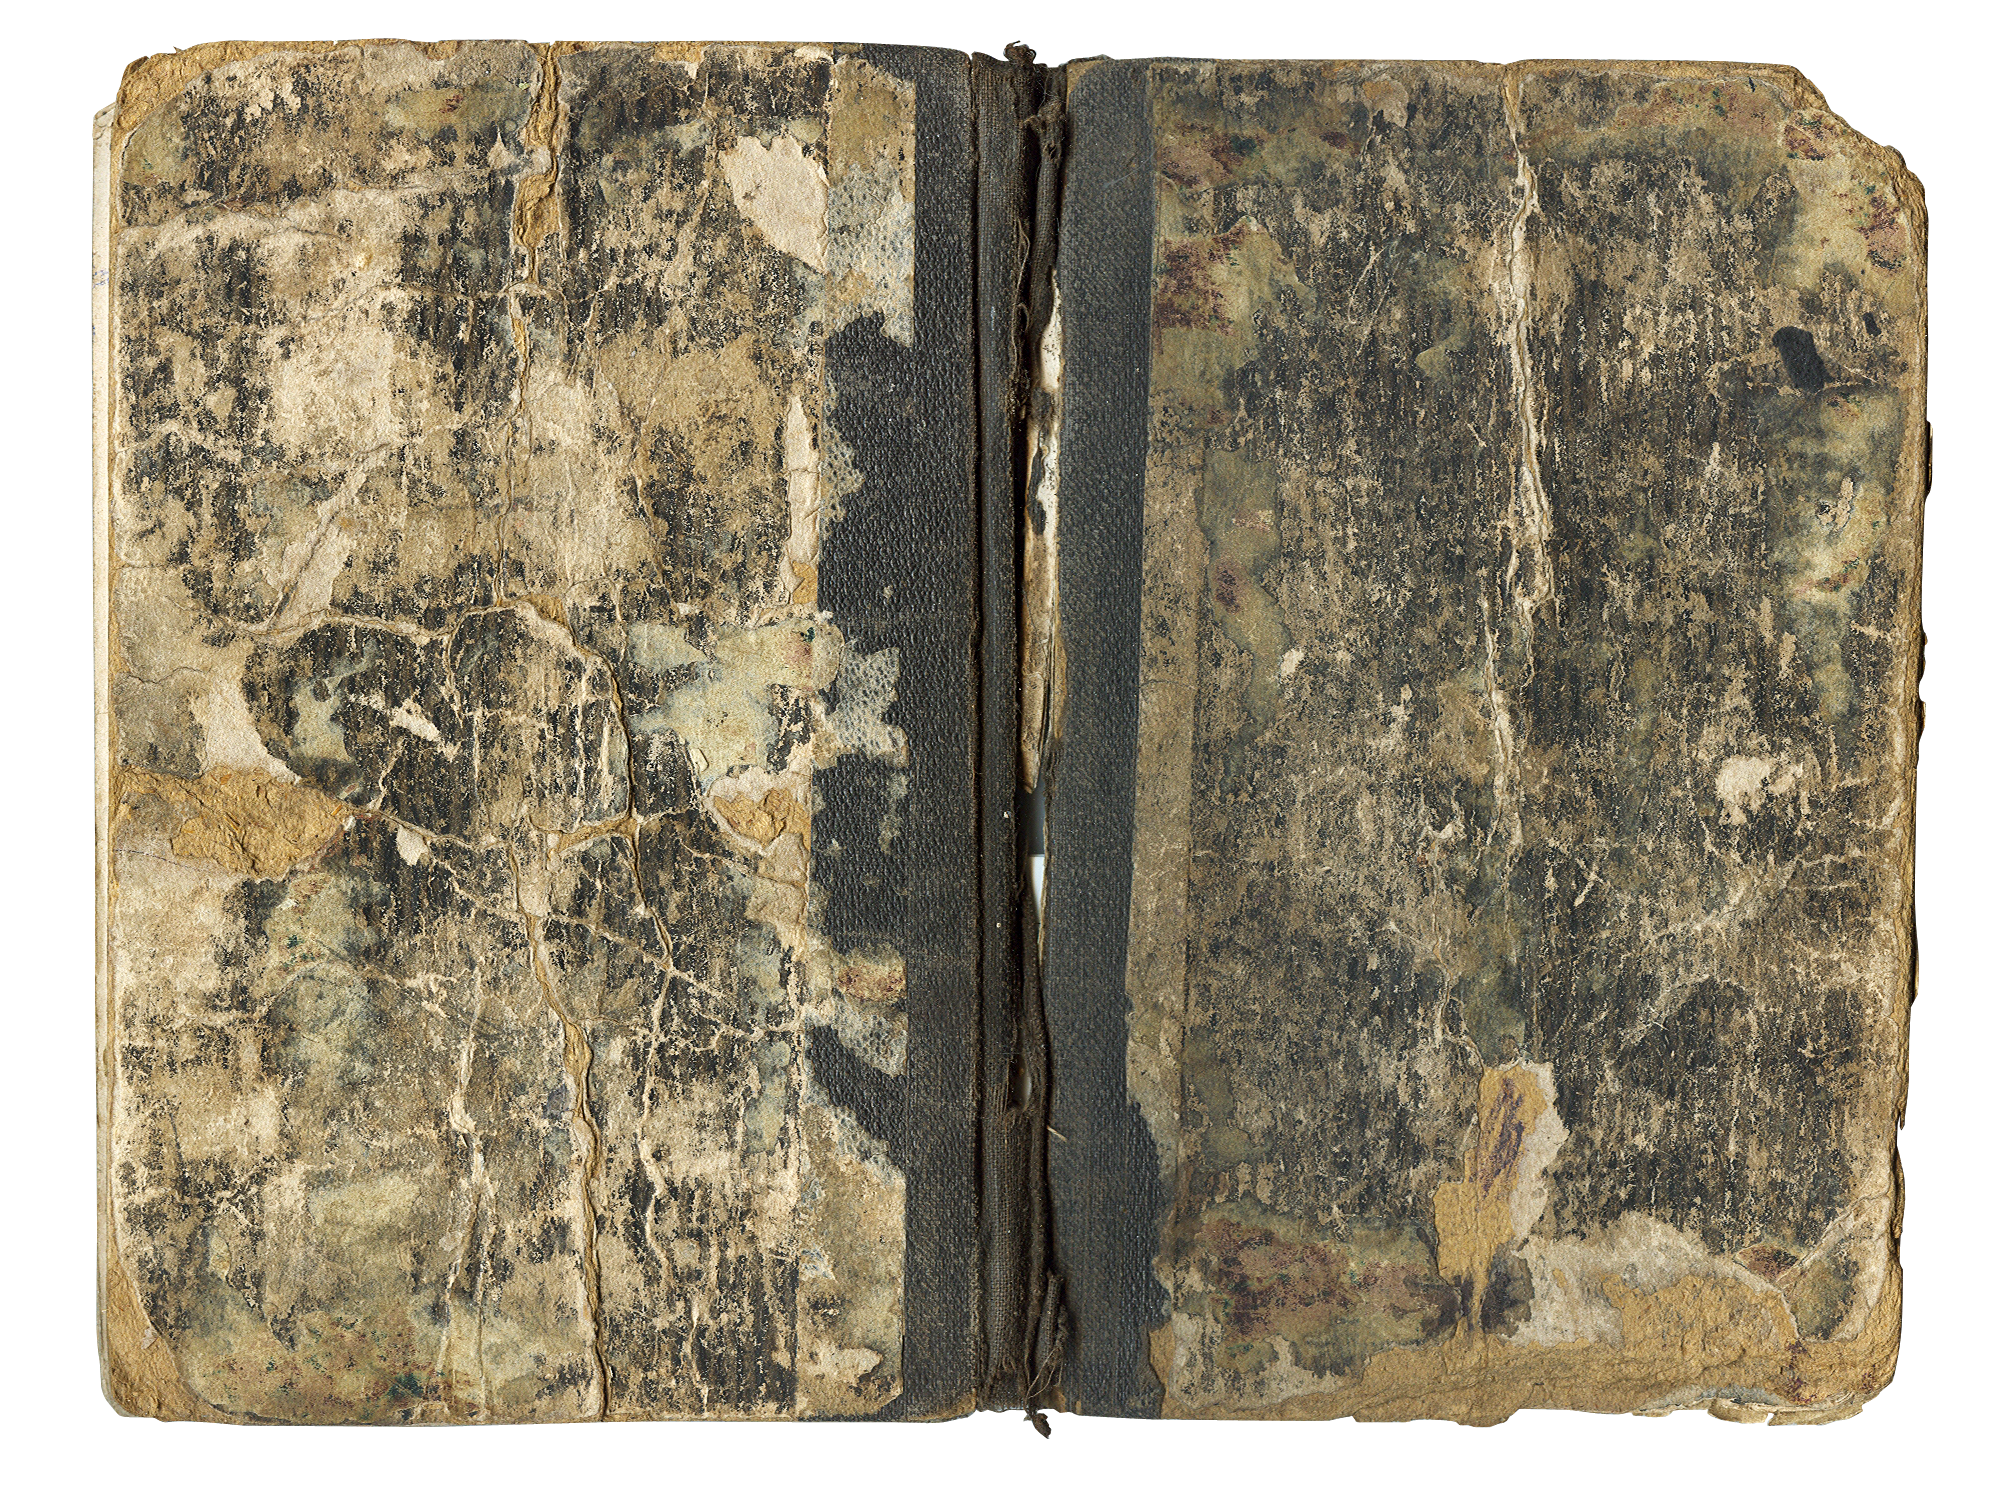 Old Book Cover Texture : Antique stained book cover ii by mercurycode on deviantart